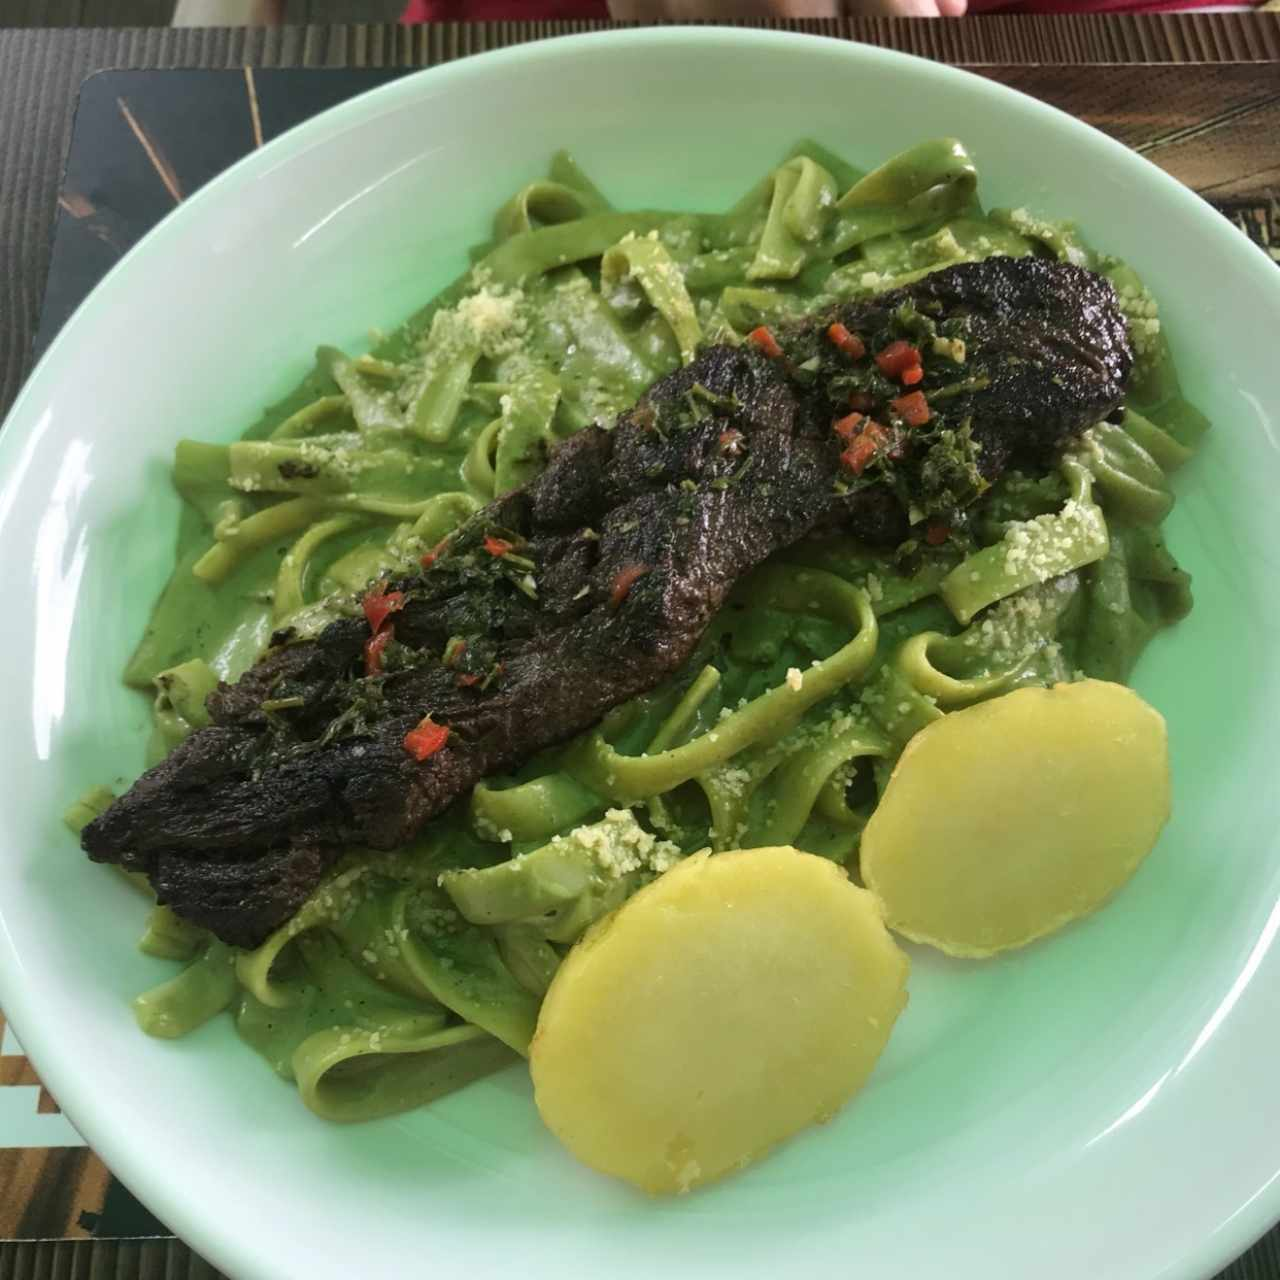 Fettuccine al pesto con churrasco